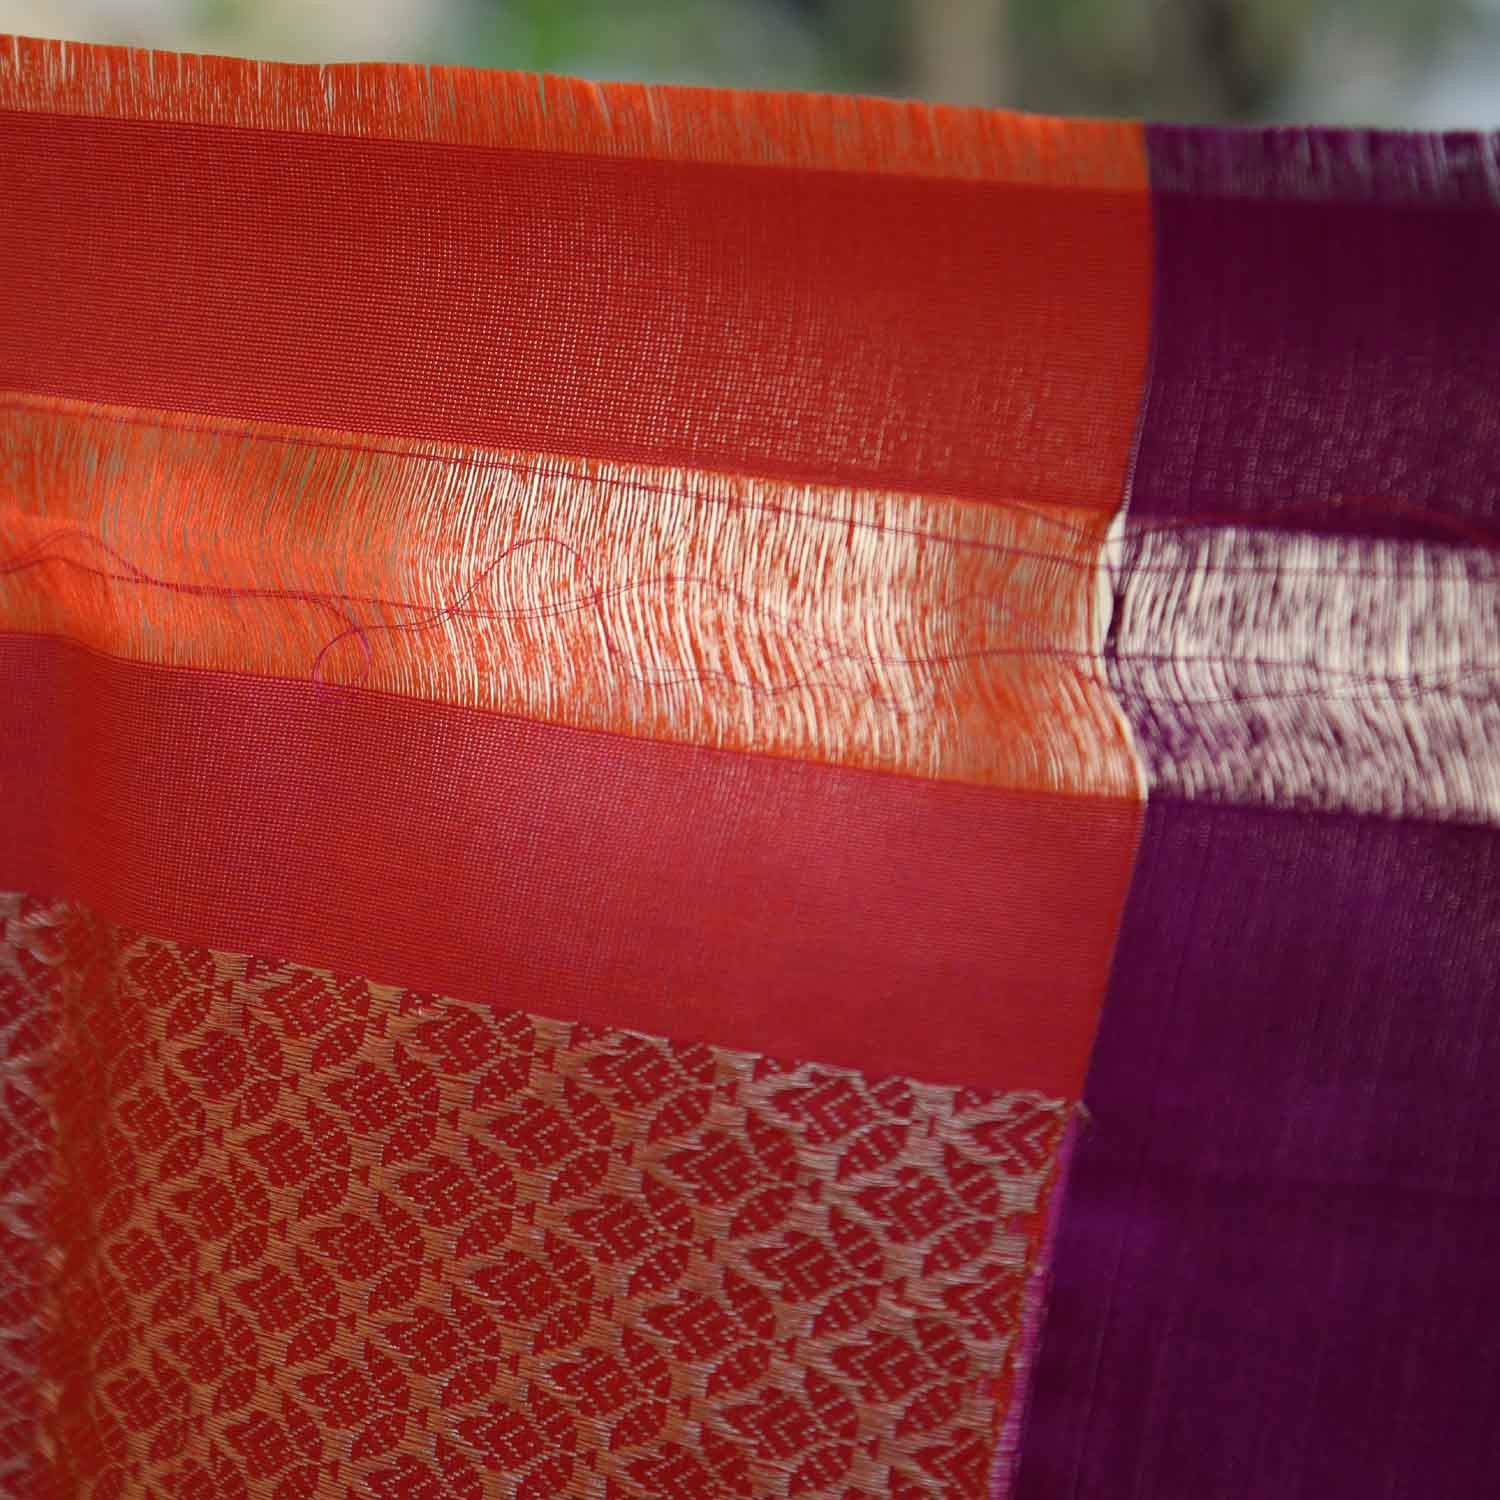 Orange-Indian Pink Pure Katan Silk Banarasi Handloom Saree - Tilfi - 5